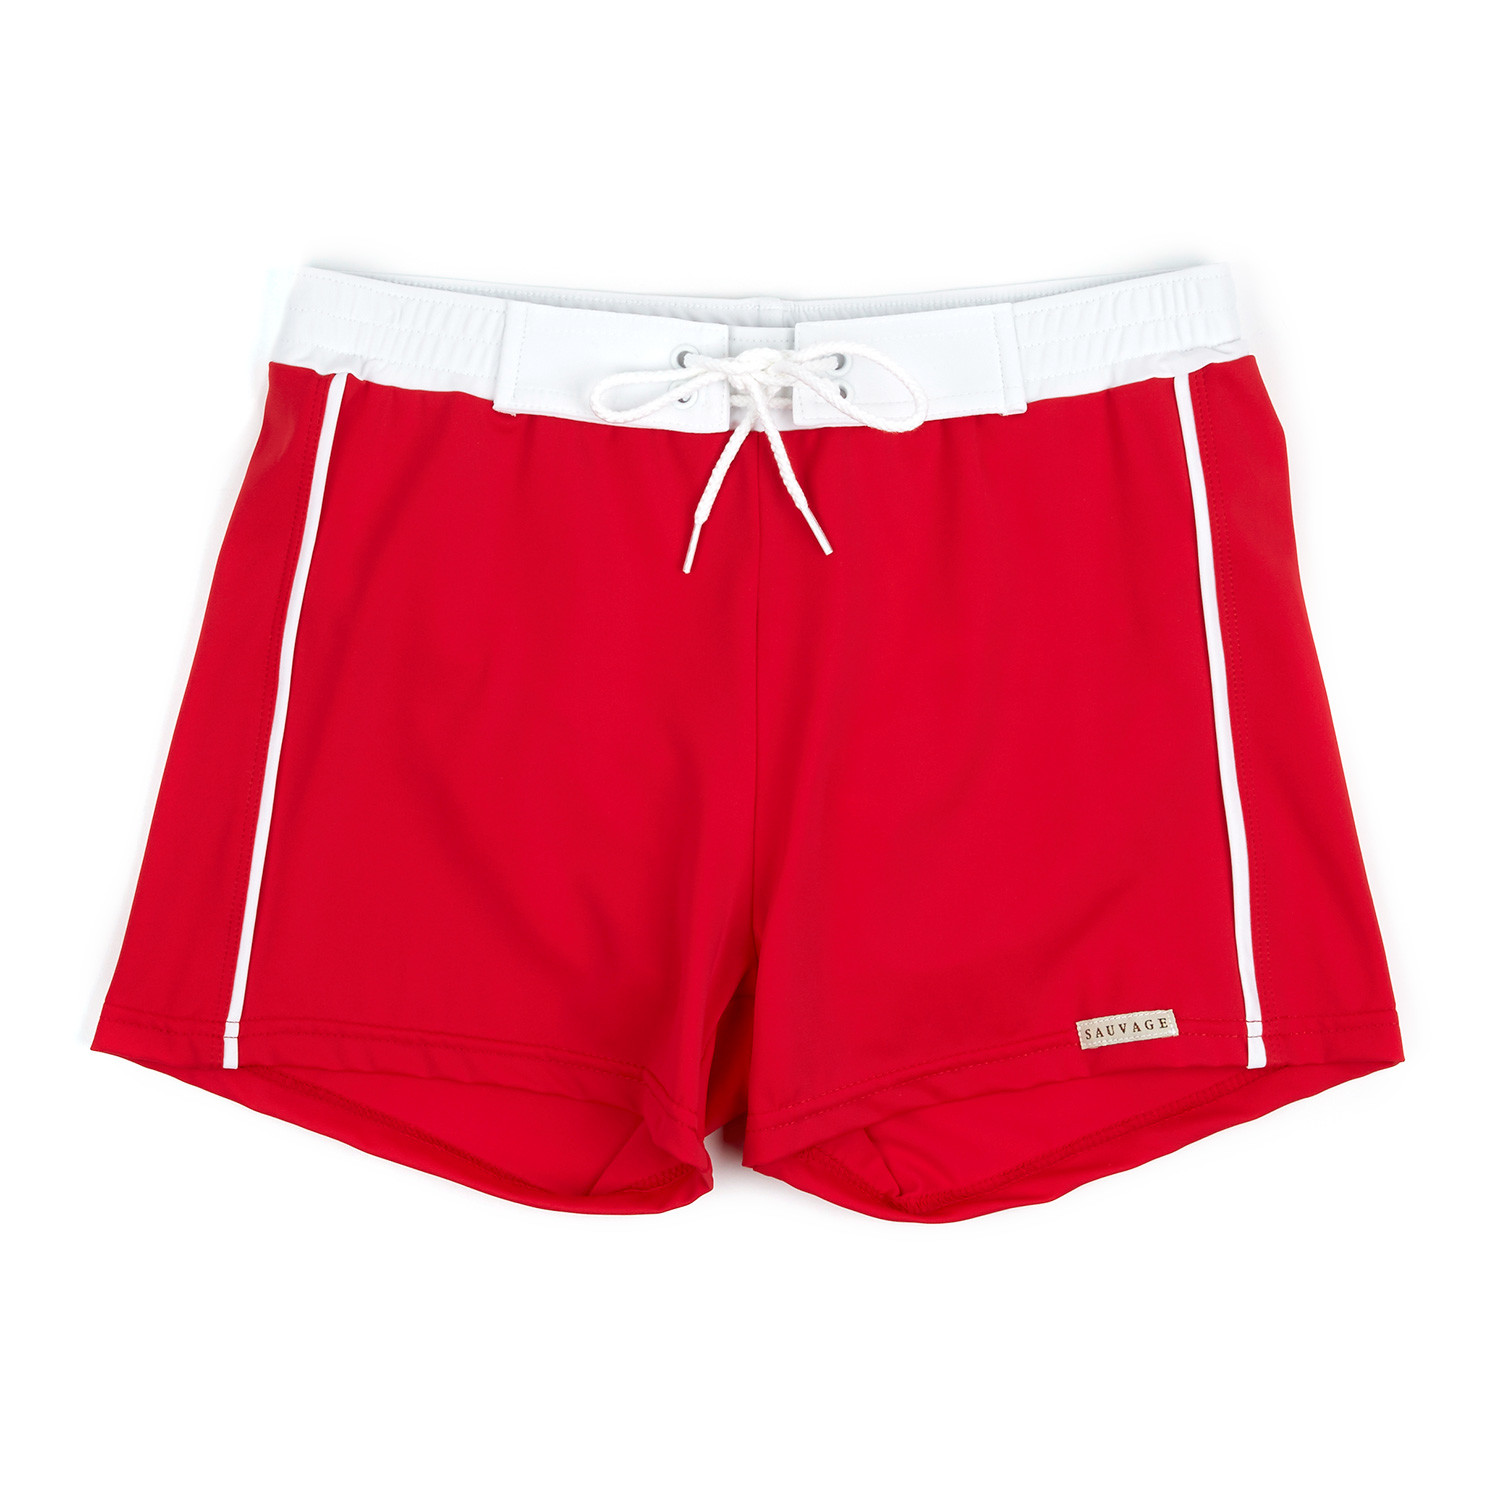 ba558b776f Banded Swim Short // Red (L) - Sauvage Swimwear - Touch of Modern